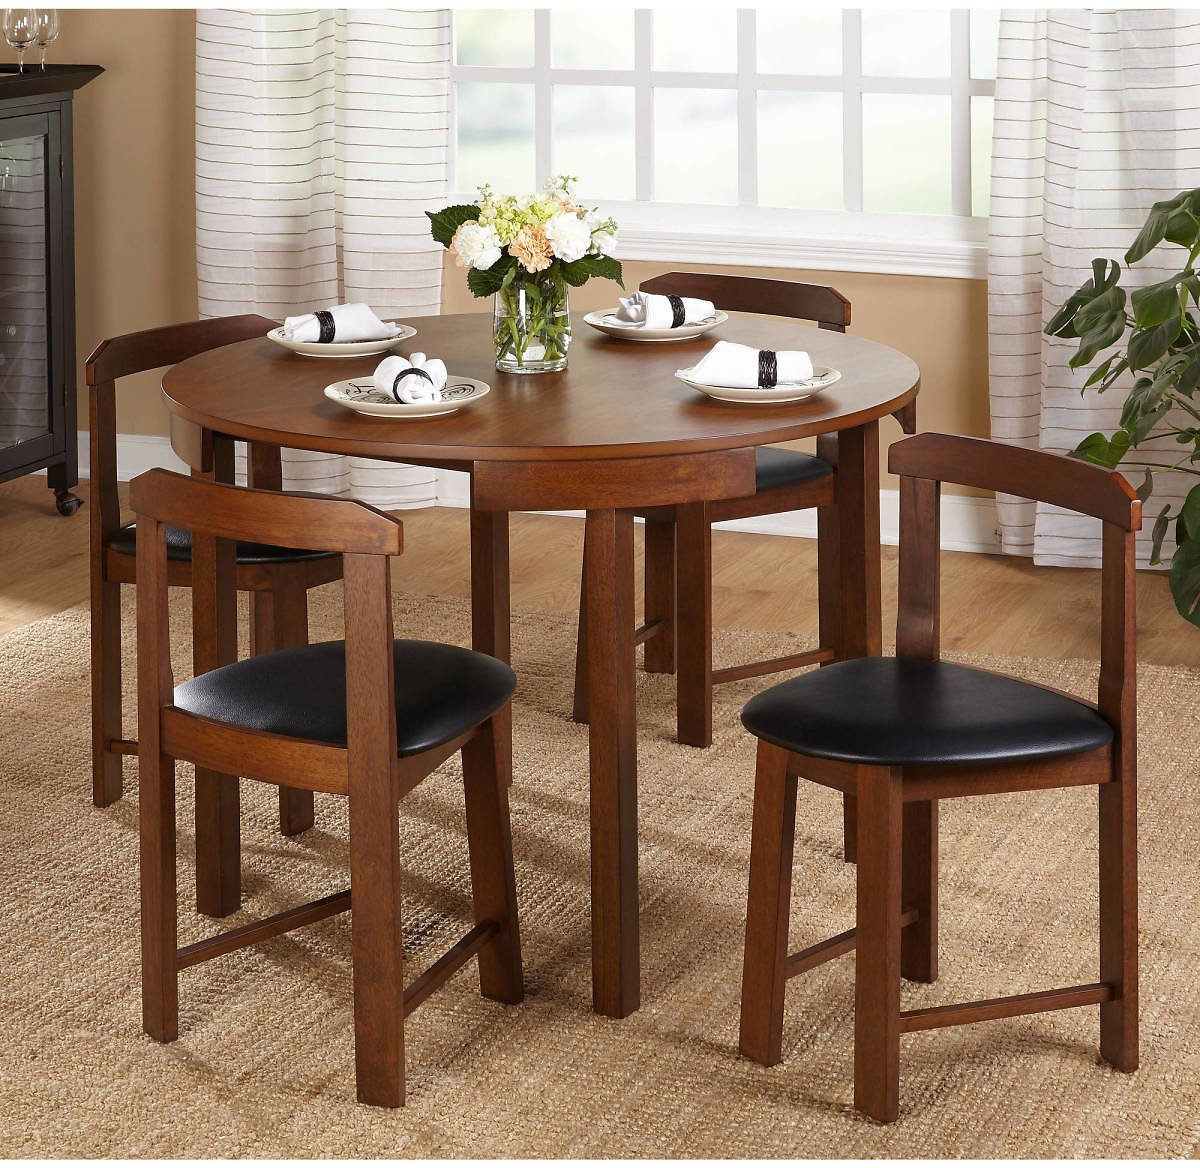 TMS Gino 5 Piece Dining Set, 2 Colors